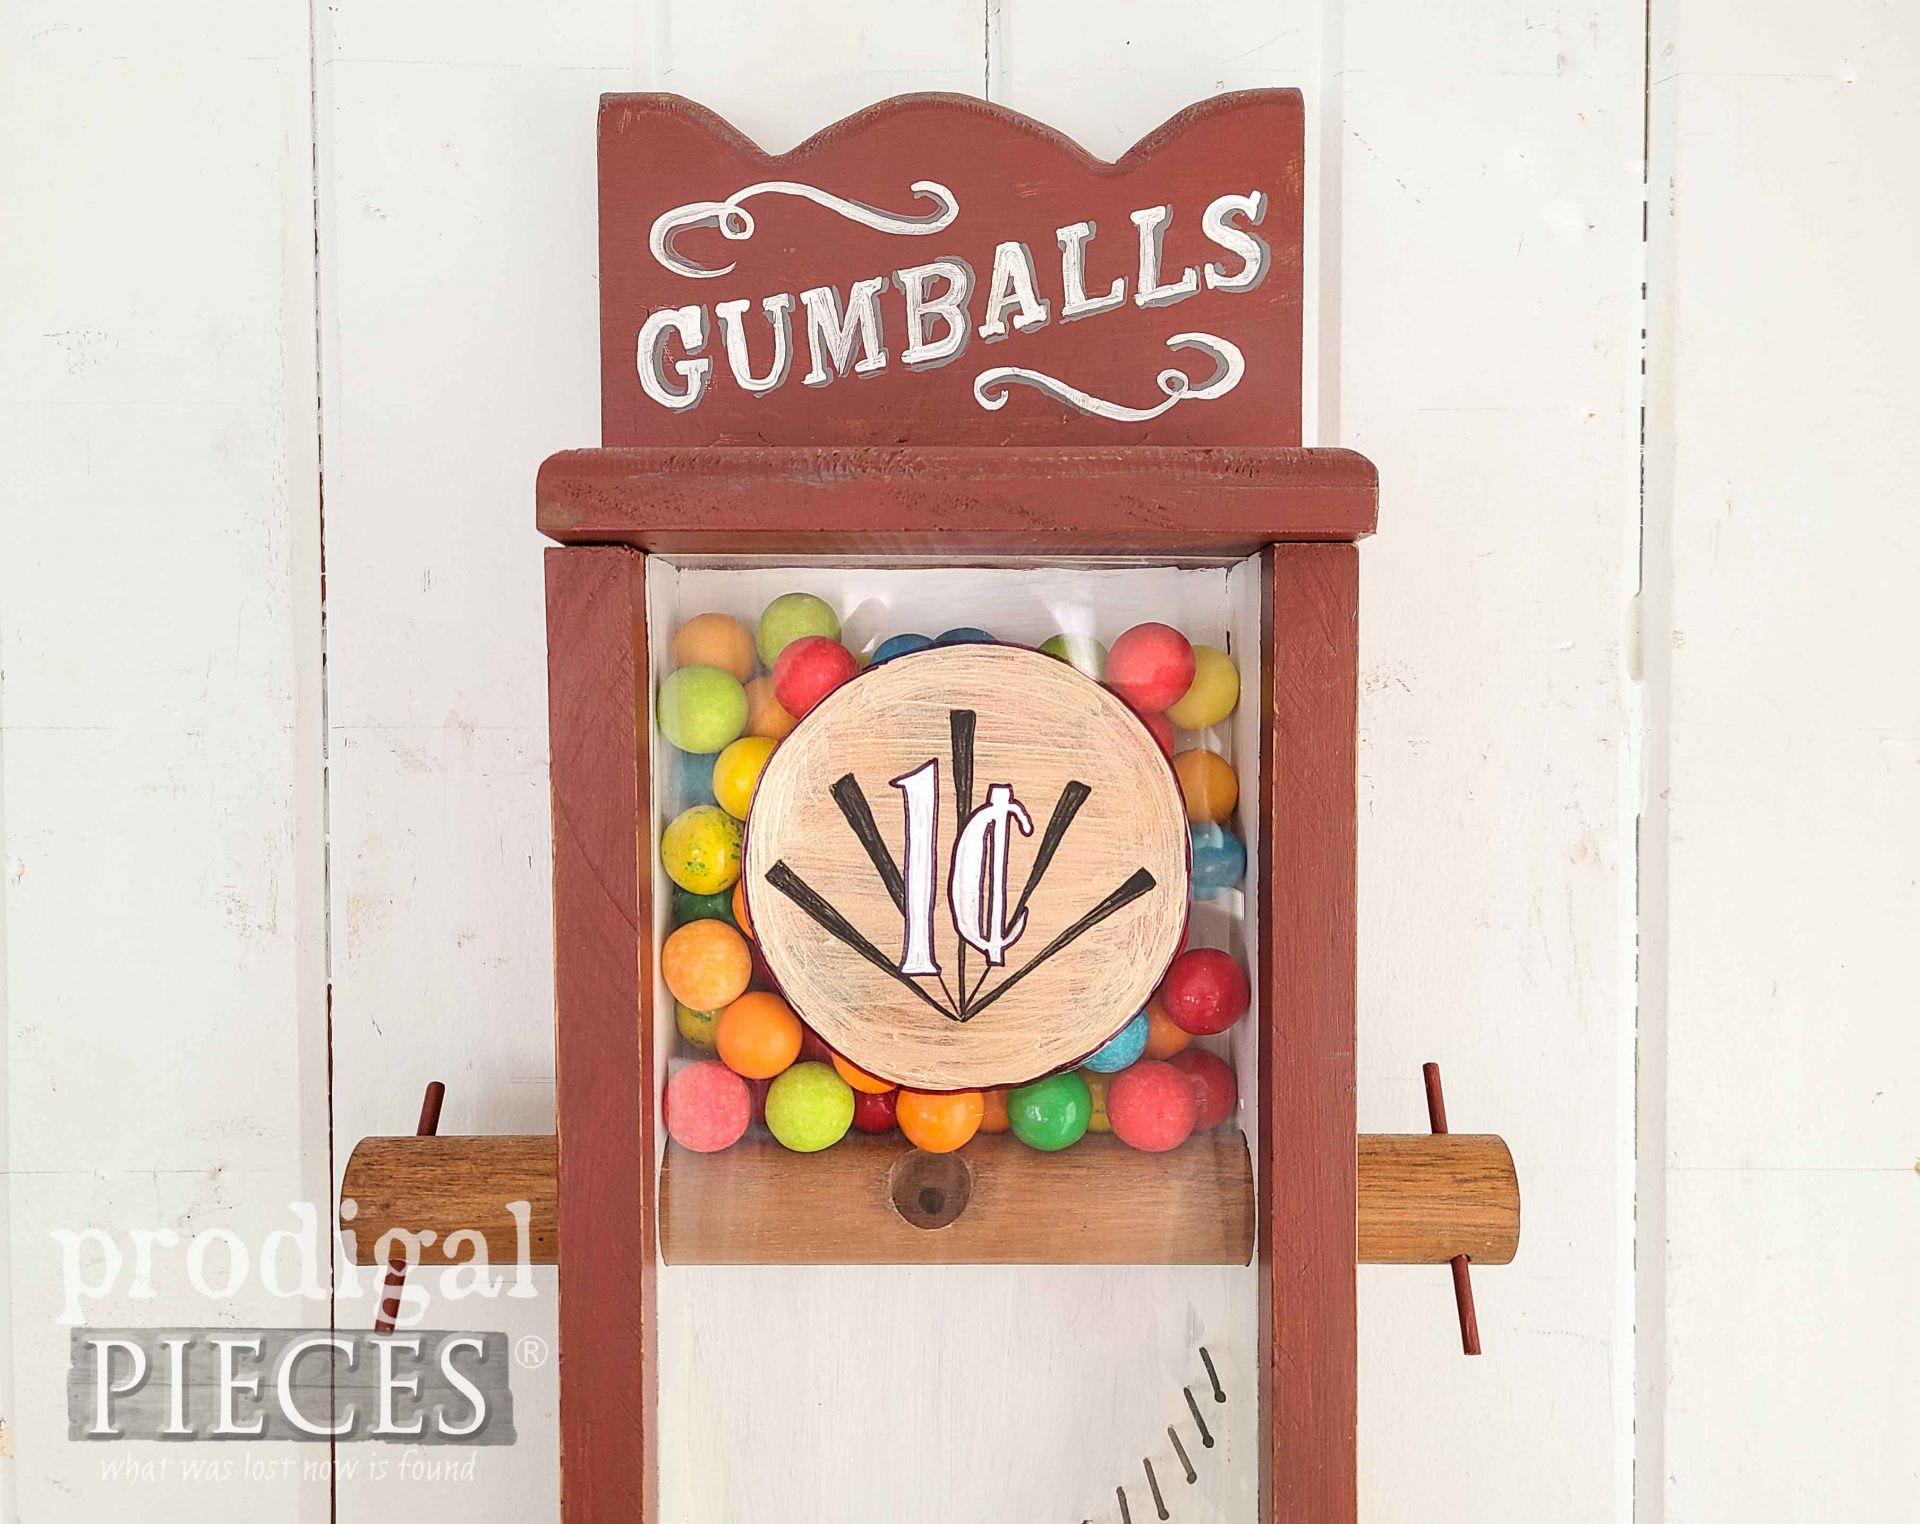 Hand-Painted Gumball Machine by Larissa of Prodigal Pieces | prodigalpieces.com #prodigalpieces #vintage #home #homedecor